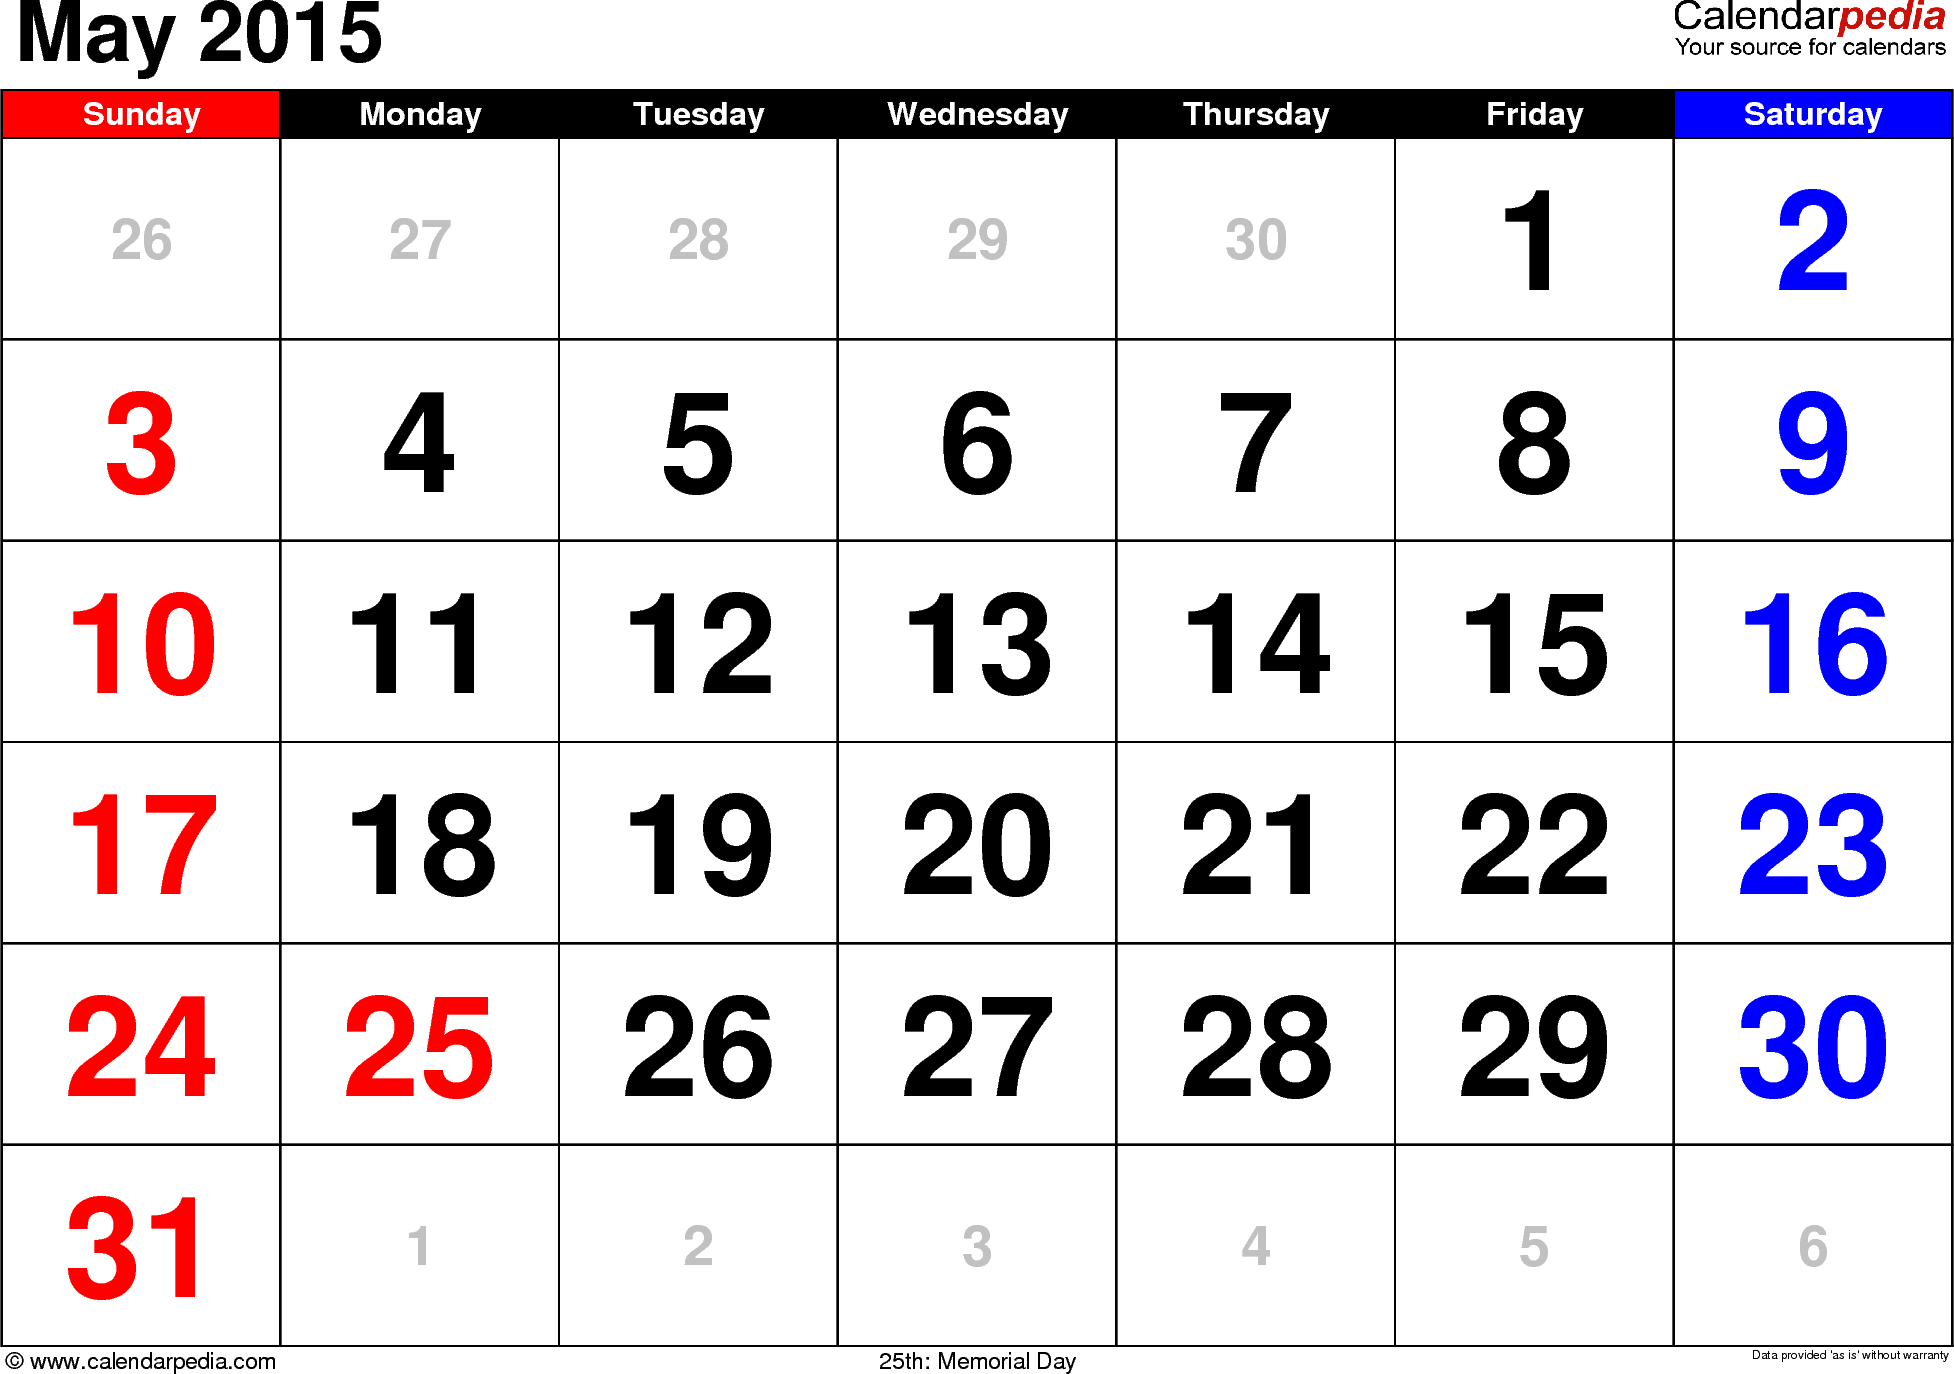 May 2015 Calendar Holidays In The United States Pictures to pin on ...